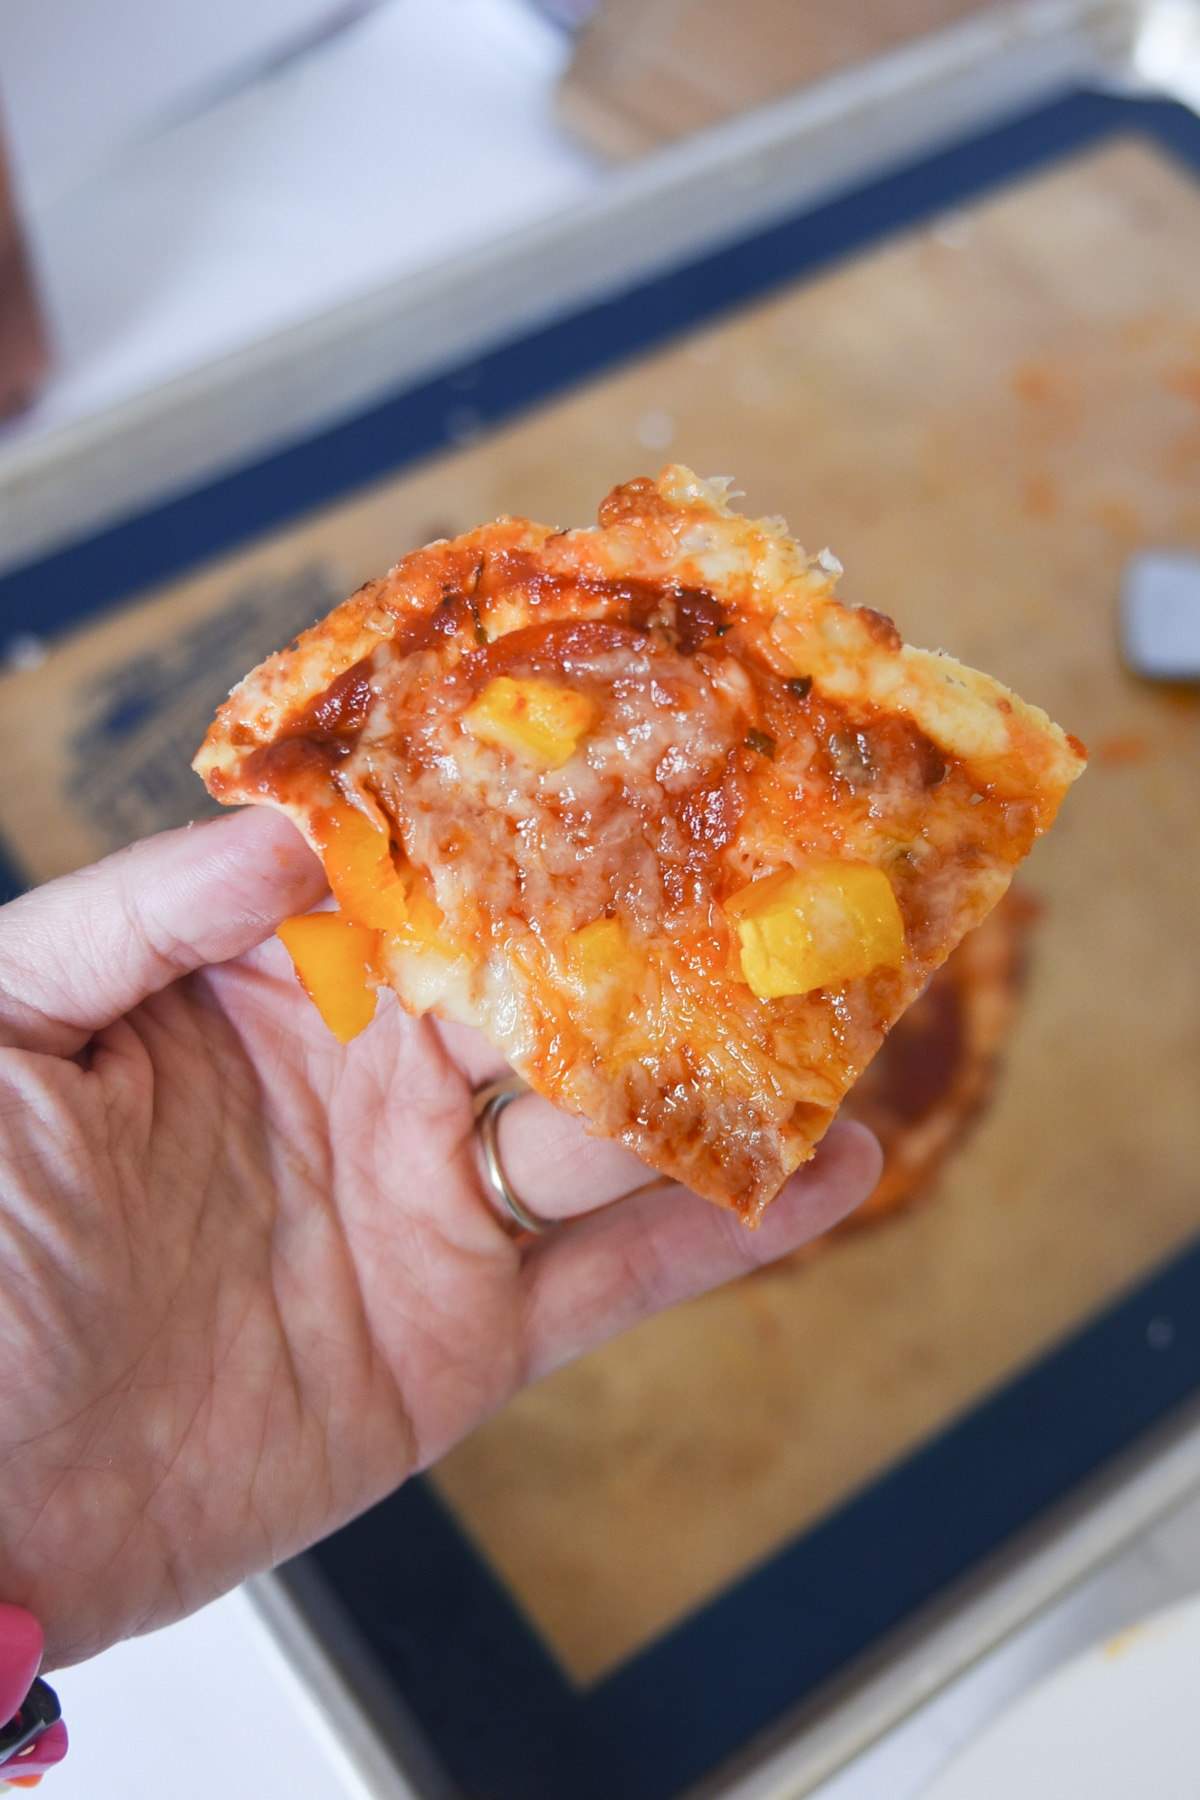 Easy Keto Pizza Crust made with Crystal Farms Cheese. This photo shows a slice of pizza with pepperoni and yellow peppers.